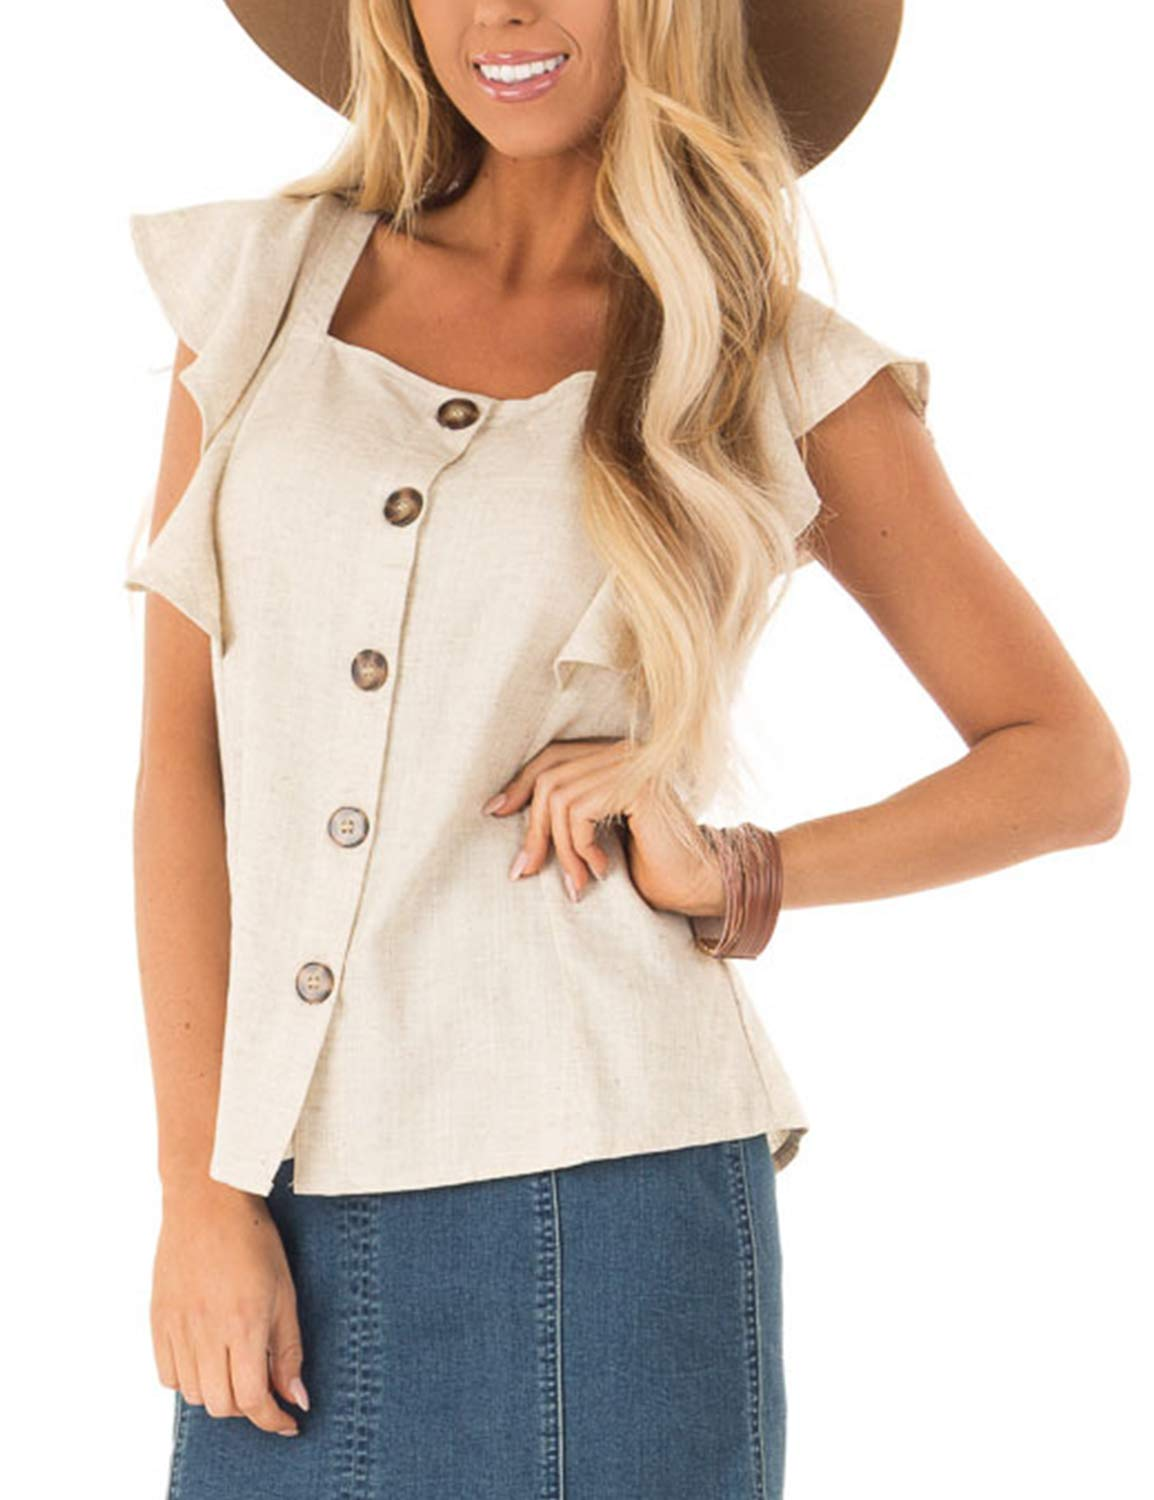 BMJL Women's Square Neck T Shirt Chiffon Ruffed Sleeves Basic Shirt Loose Casual Top Buttons M Beige